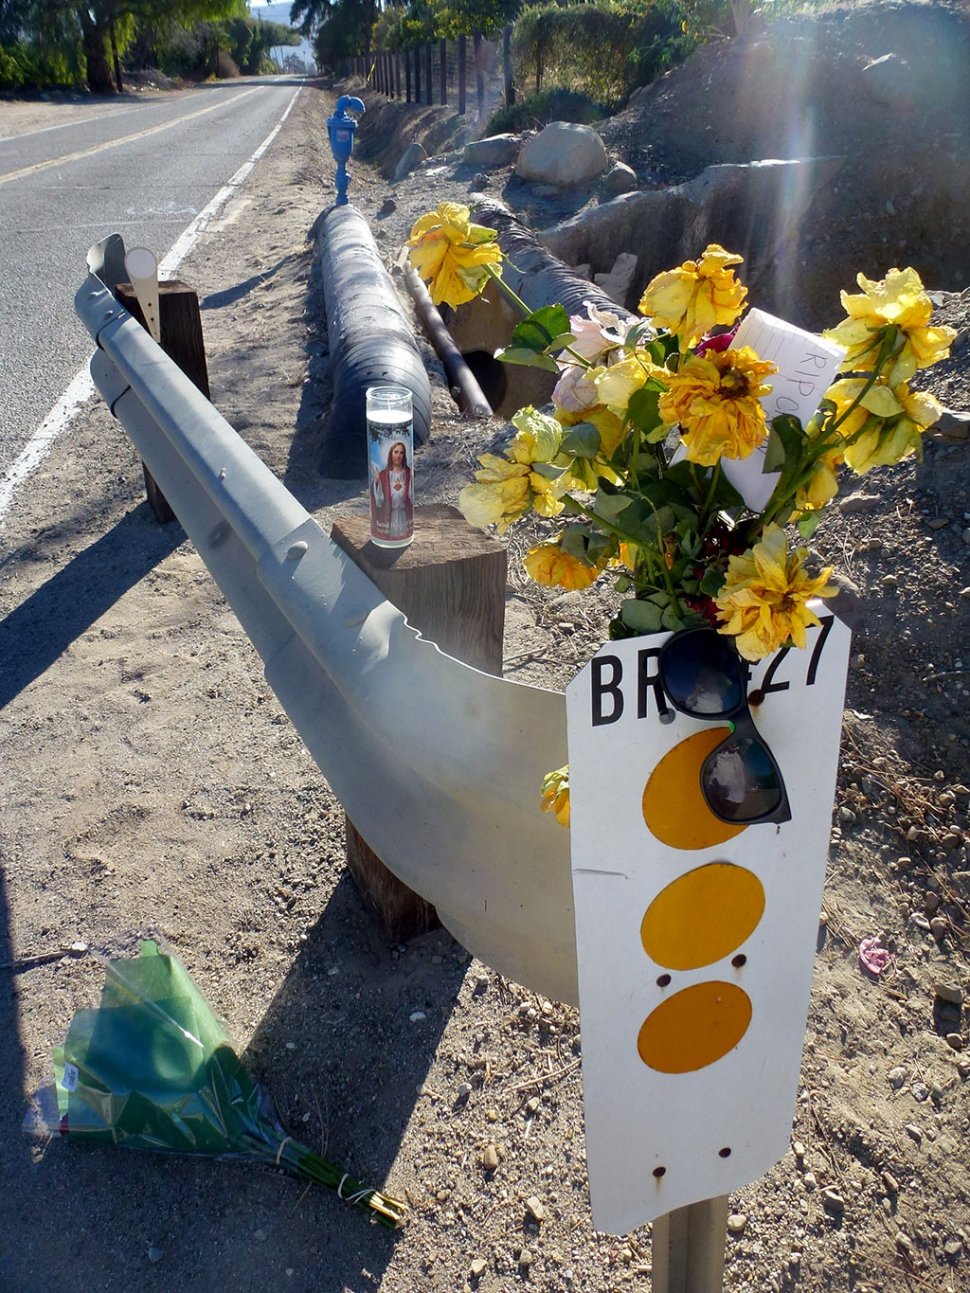 A memorial marks the sight of Saturday night's shooting.